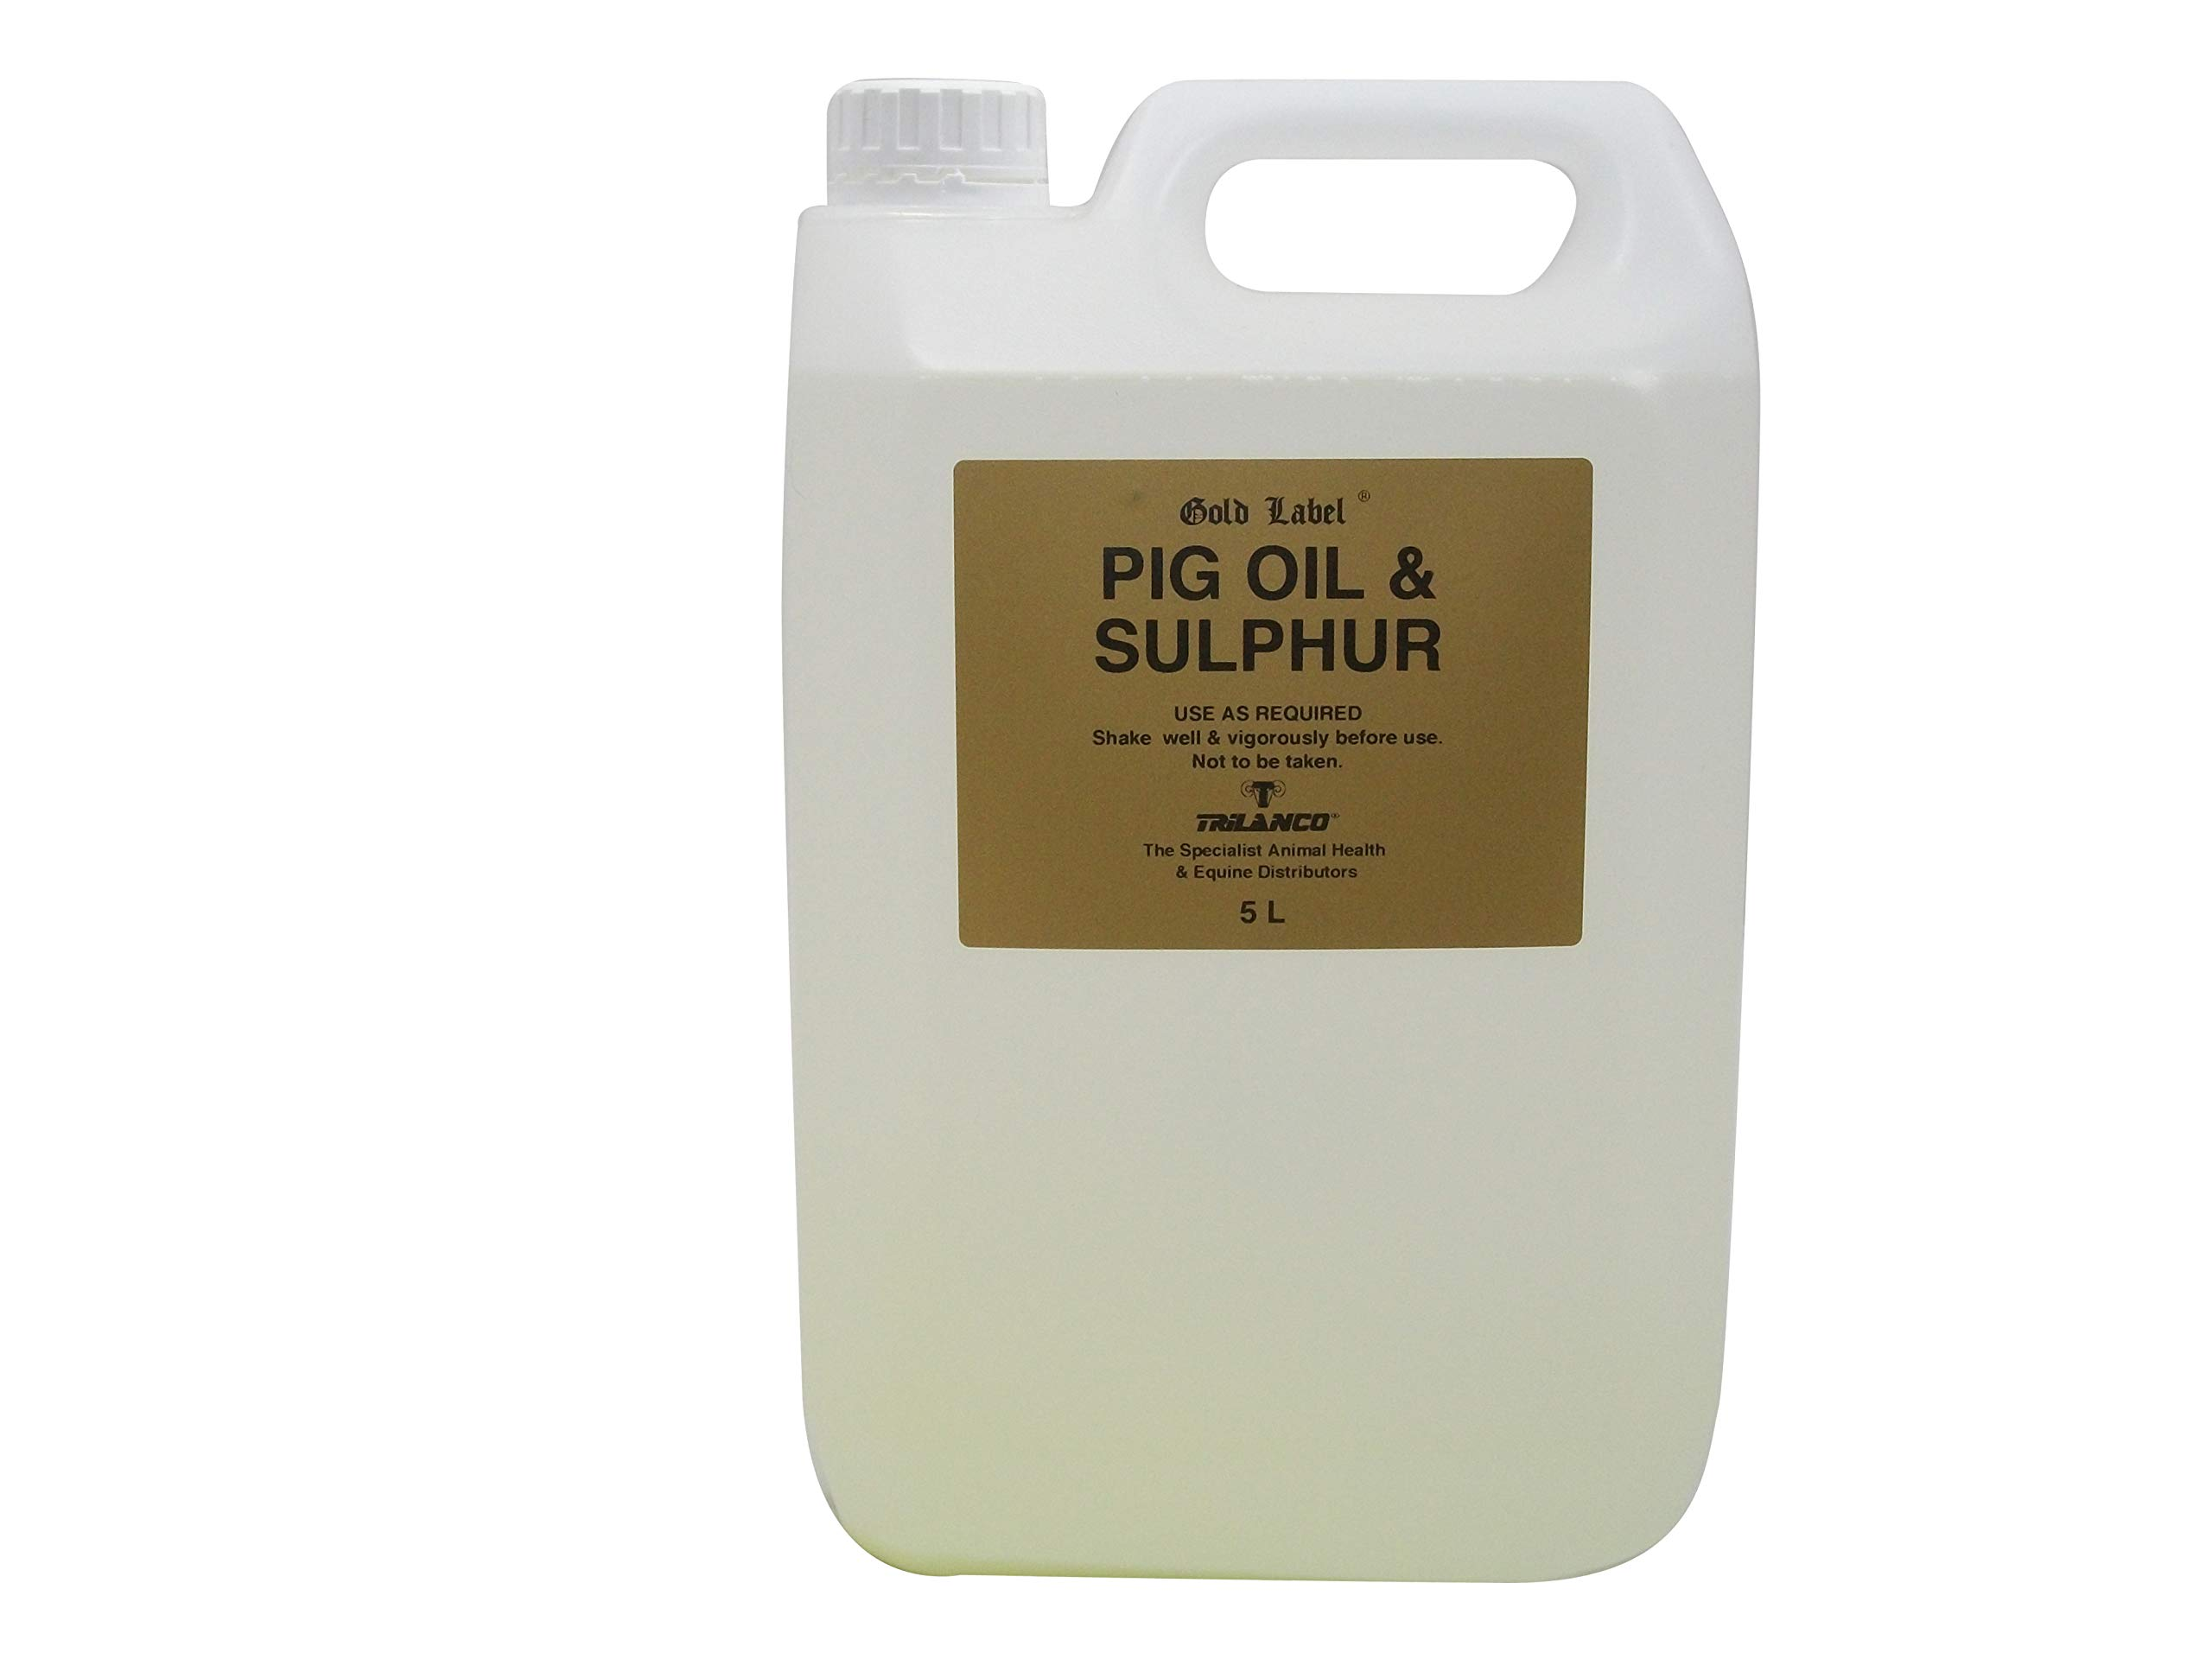 Gold Label Pig Oil & Sulphur 1.0Lt / 5.0Lt